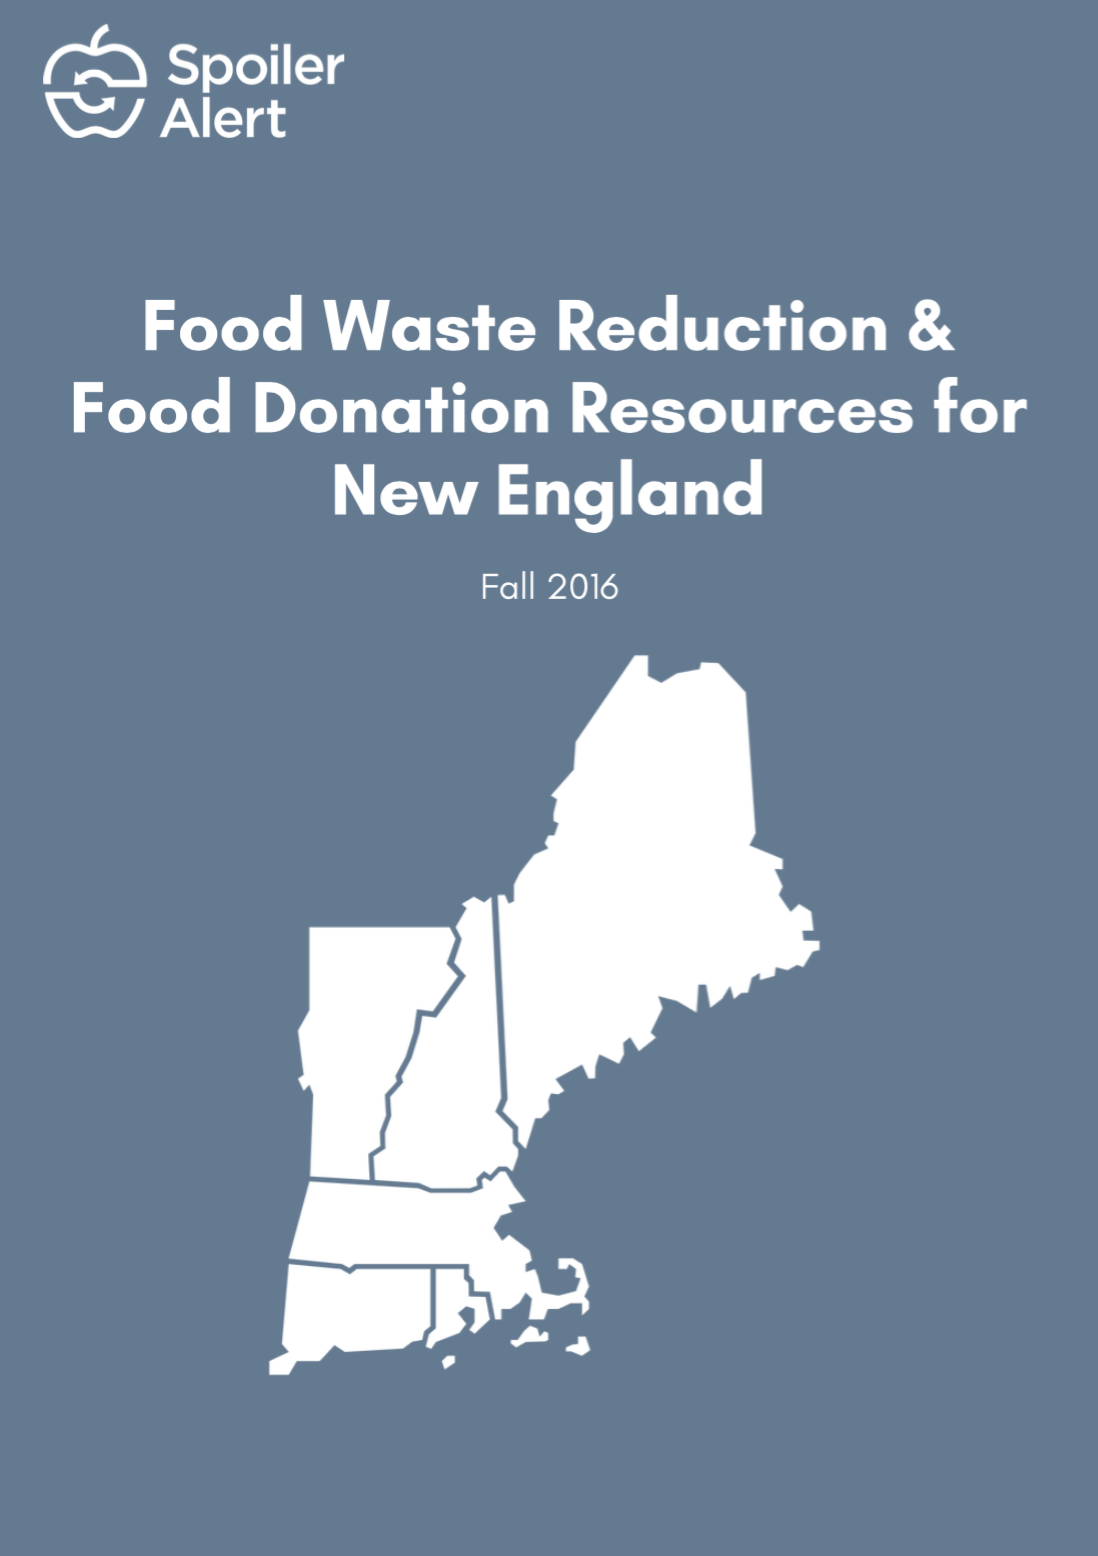 Food-Waste-Reduction-Food-Donation-Resources-New-England